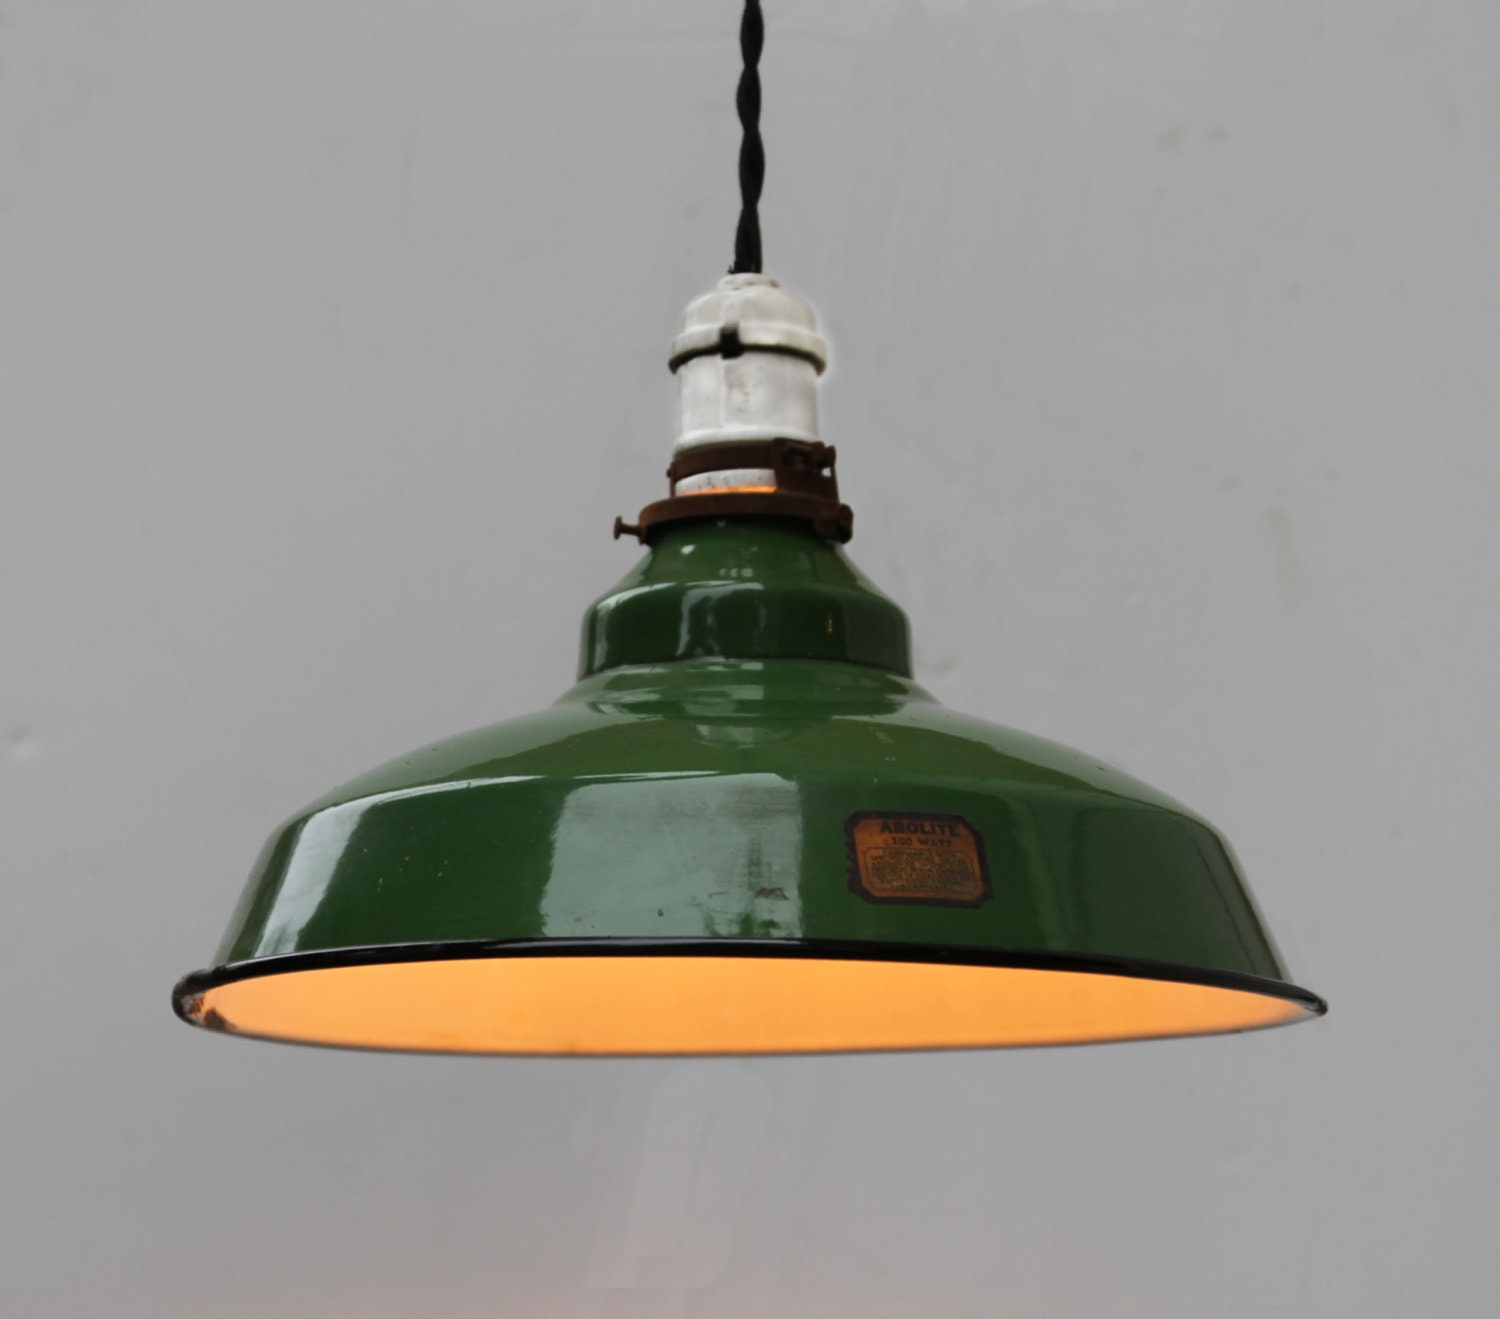 Vintage industrial green enamel pendant light fixture by turul for Antique pendant light fixtures